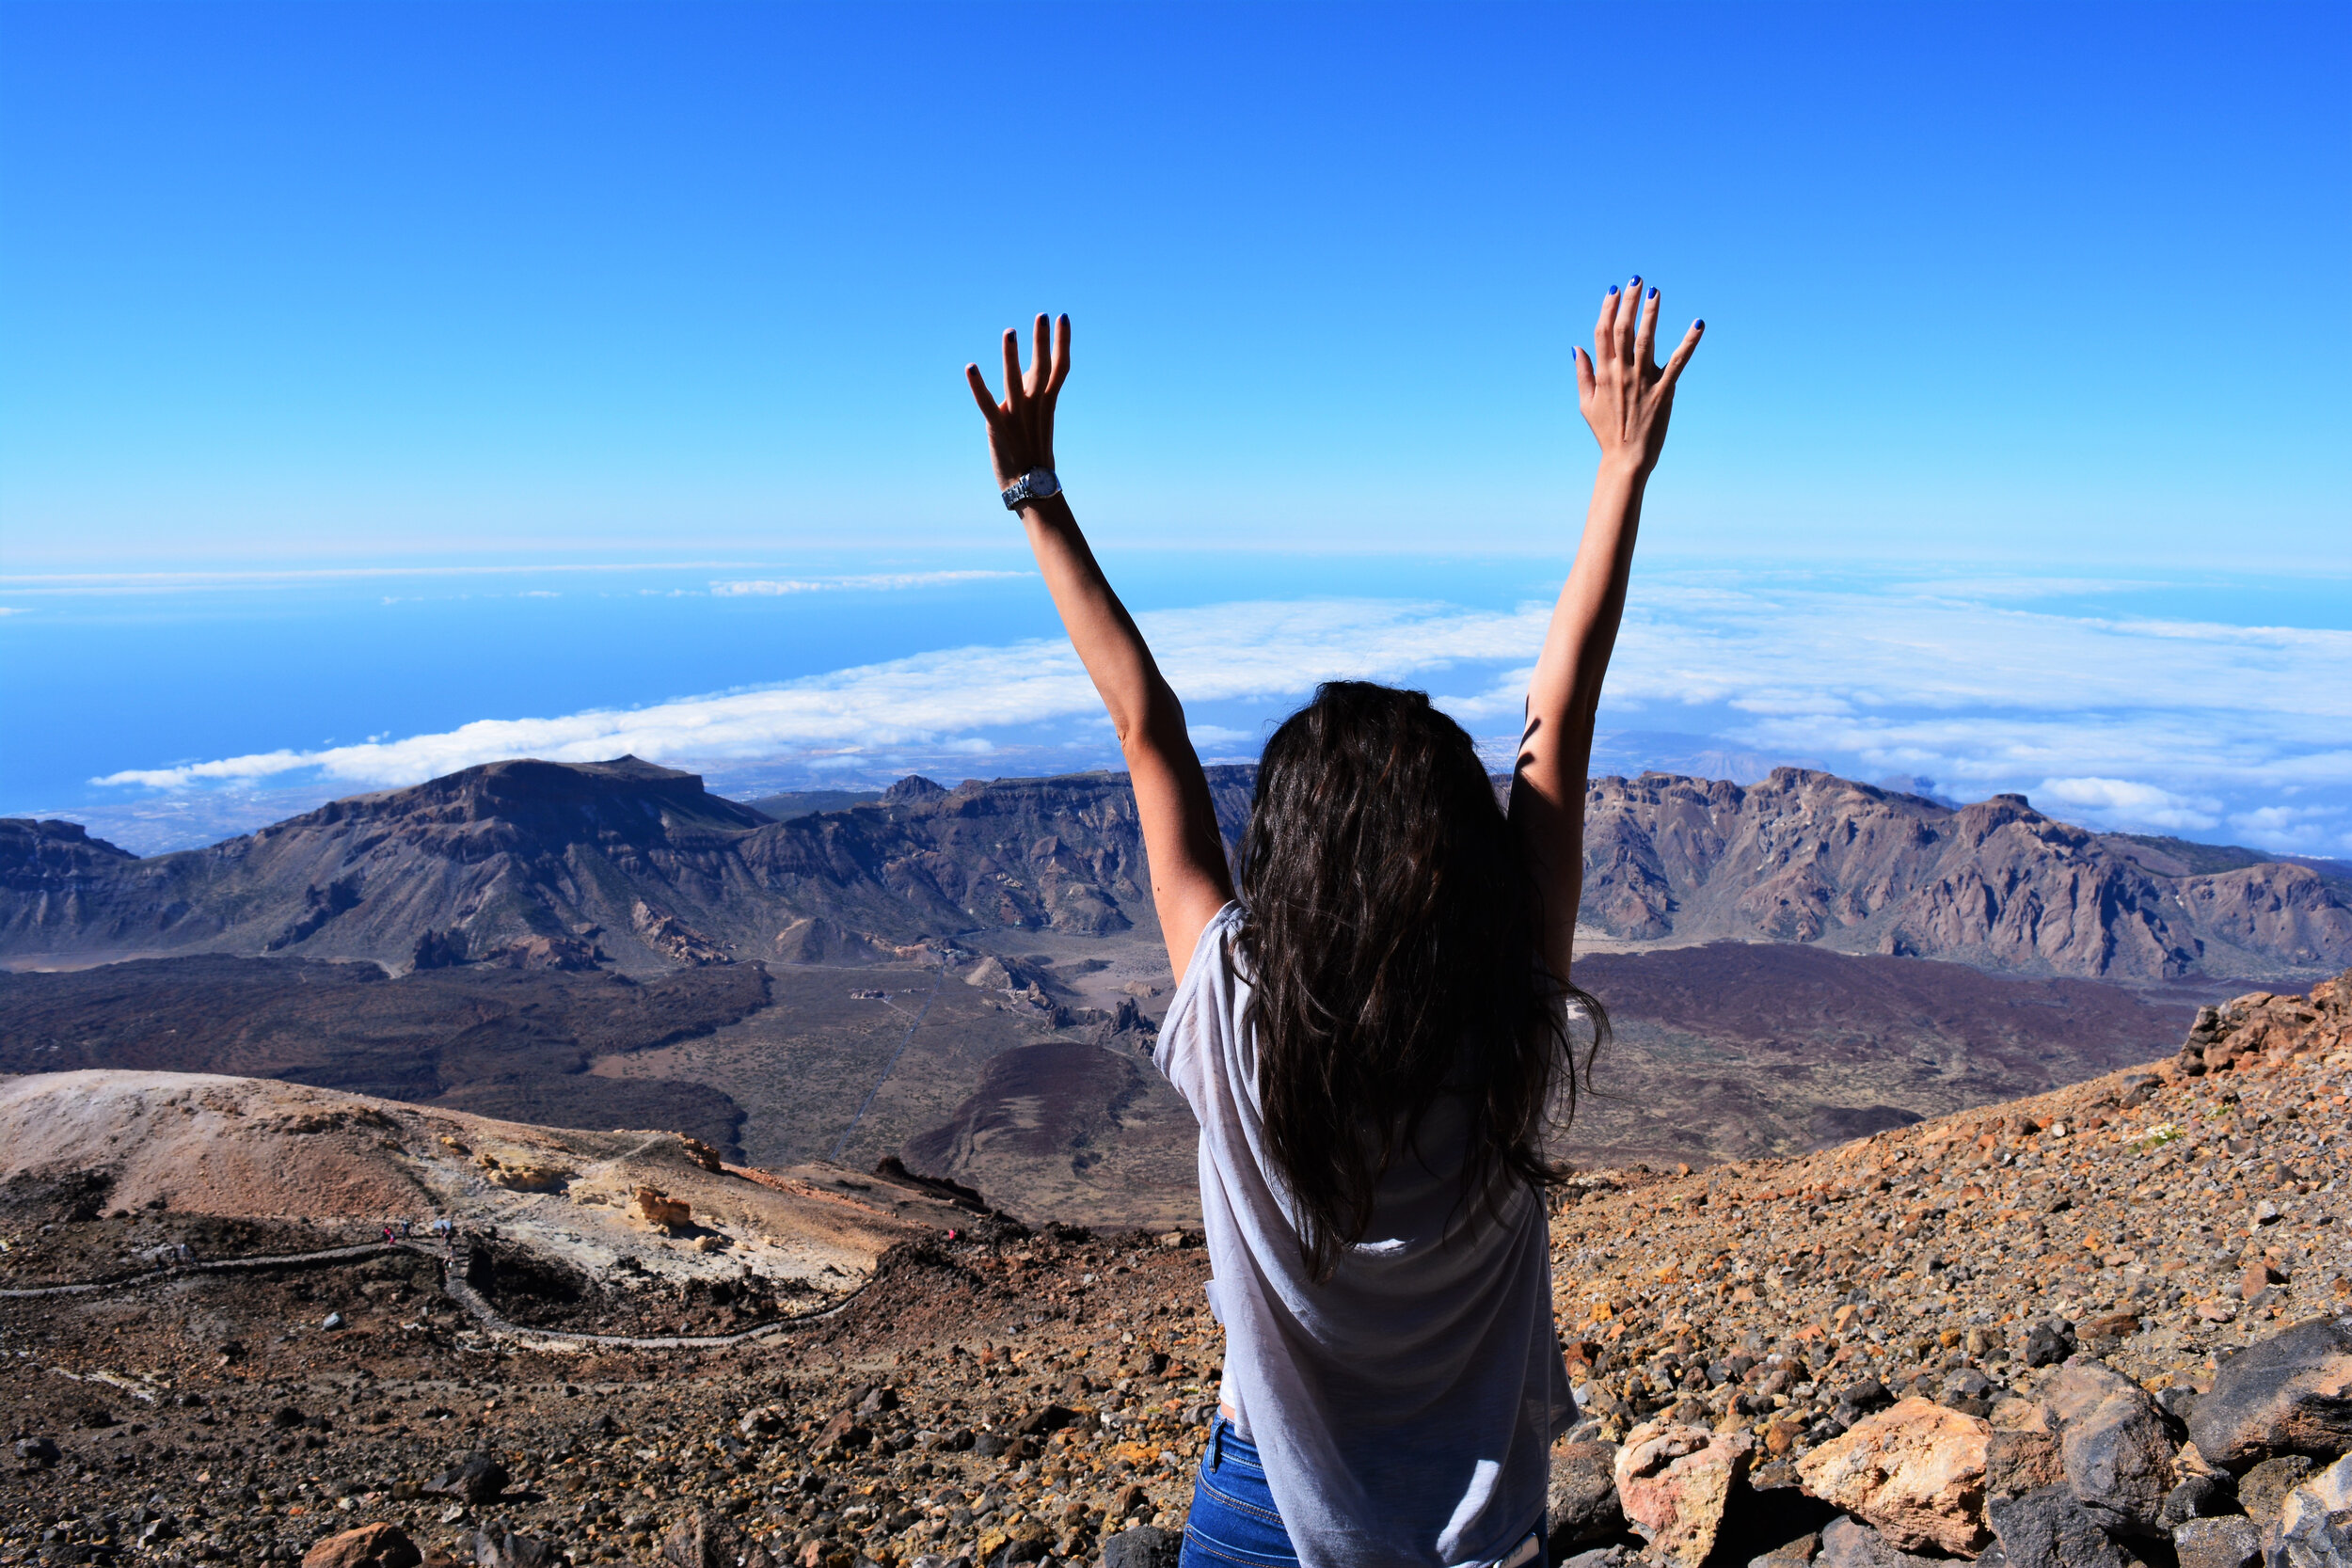 Canva - Woman Standing on Mountain While Raising Her Hands.jpg